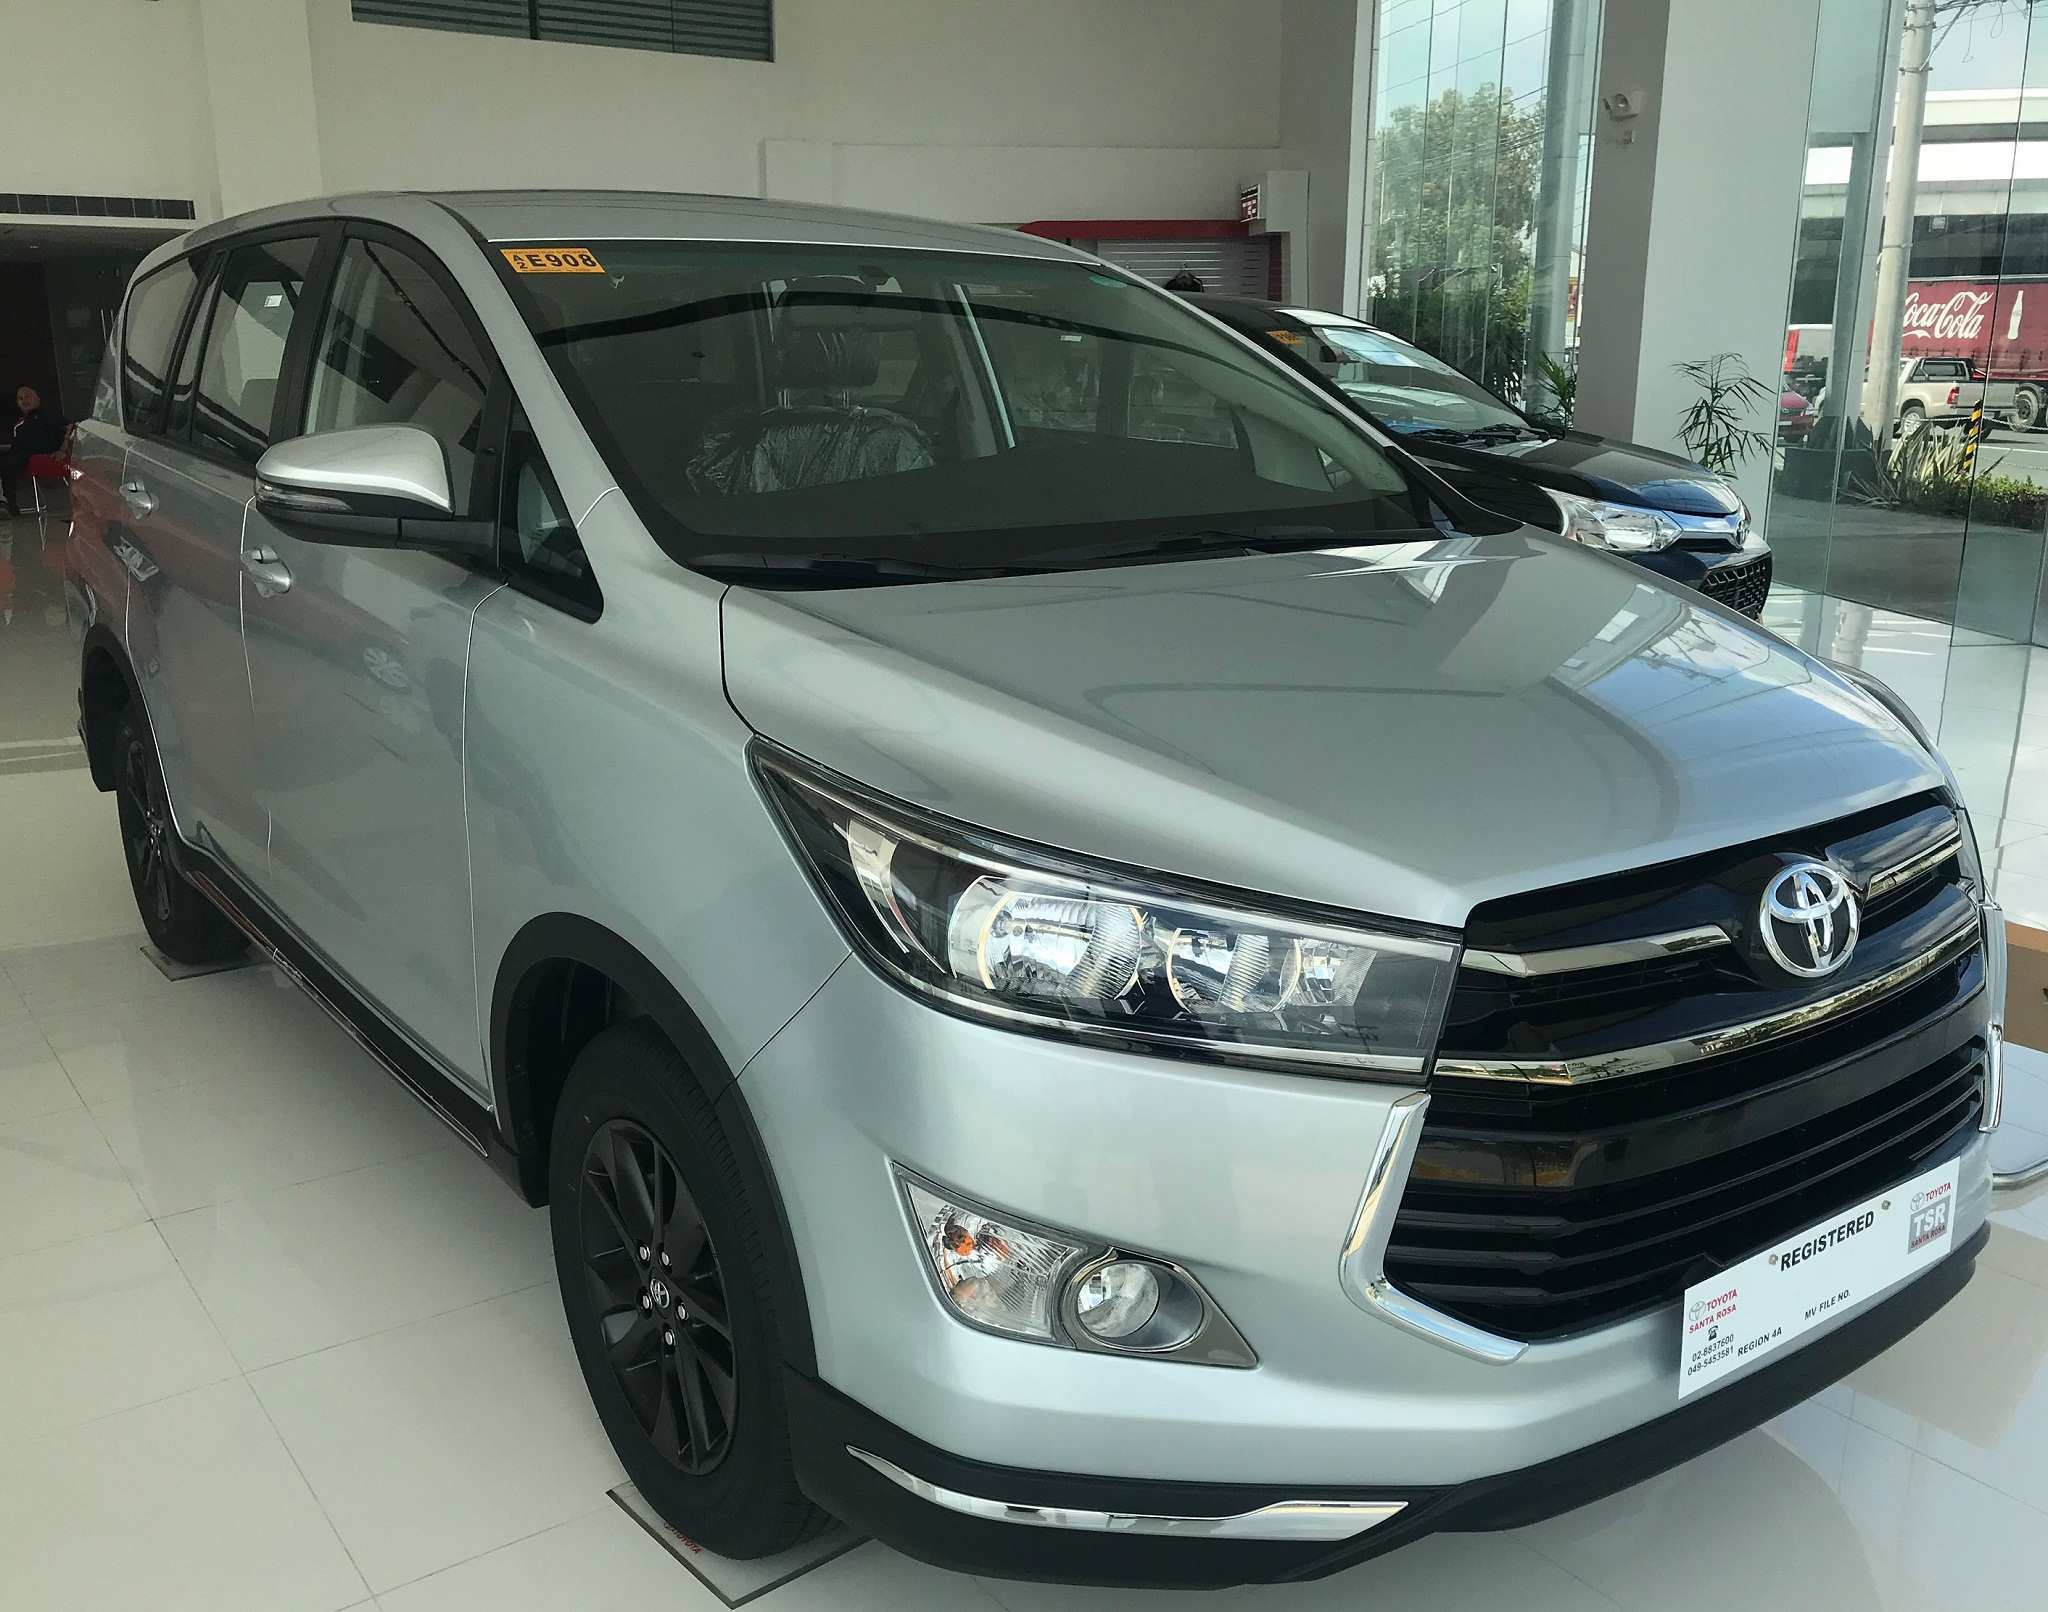 96 A Toyota Innova Crysta Facelift 2020 Reviews